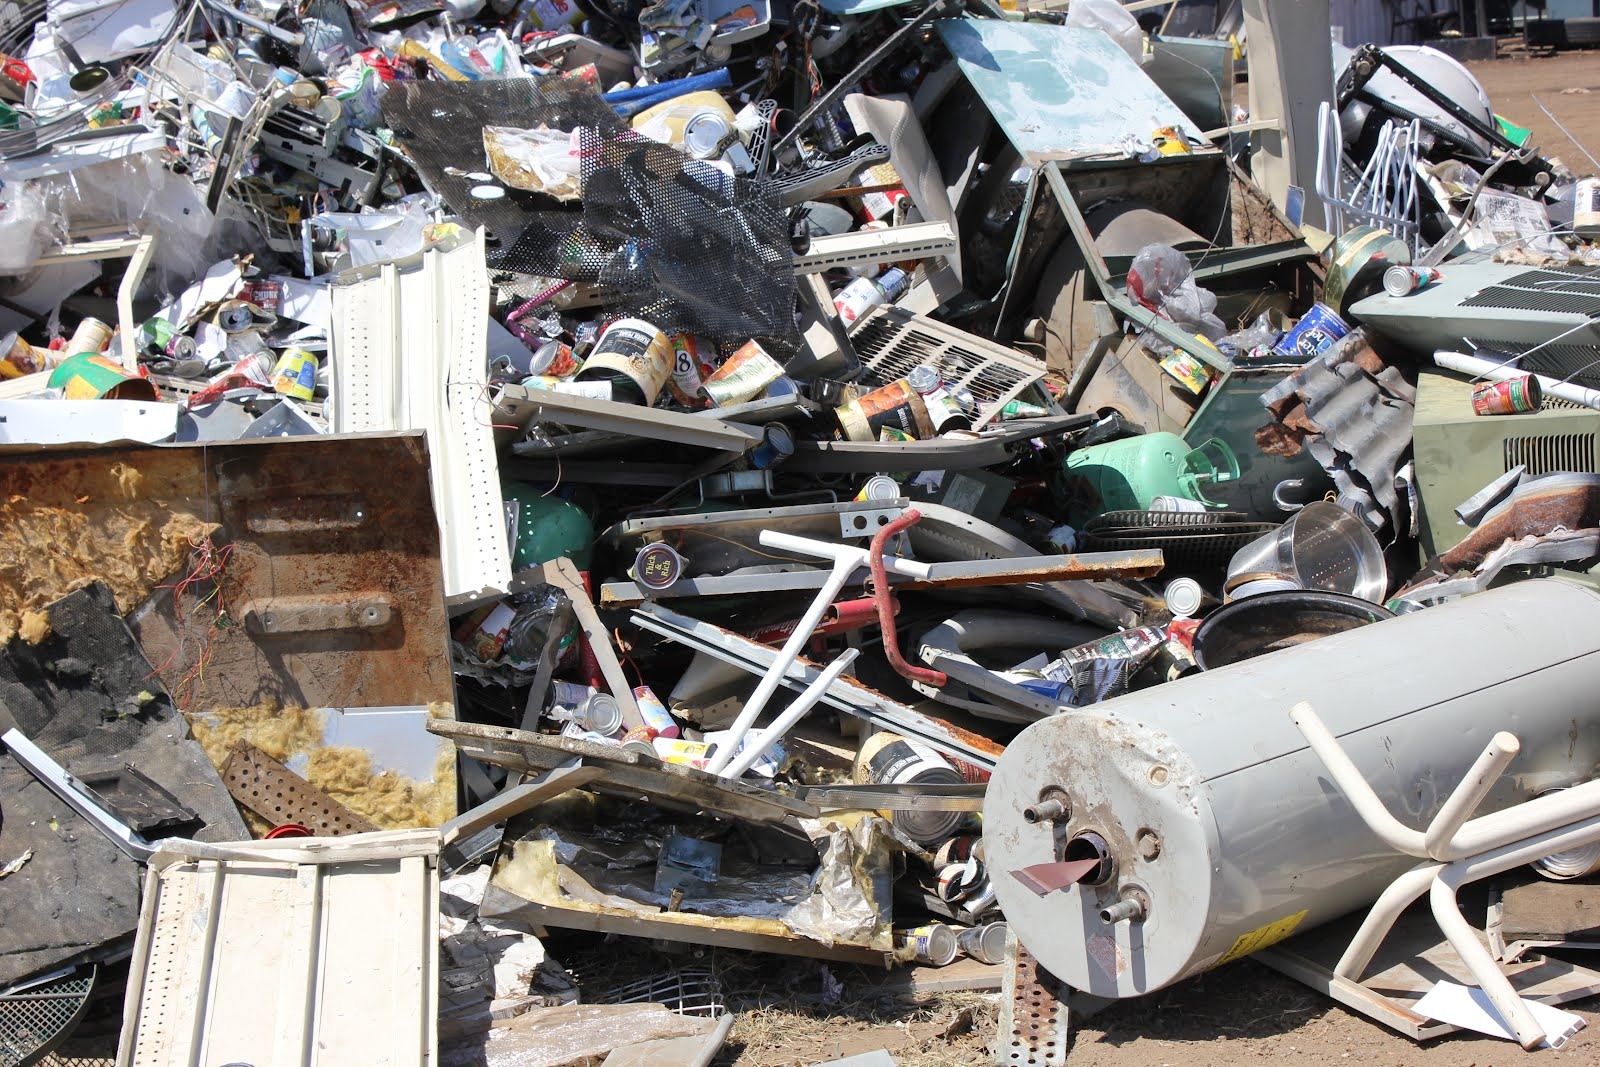 Scrap Metal Recycling In Chandler Az  We Buy Scrap